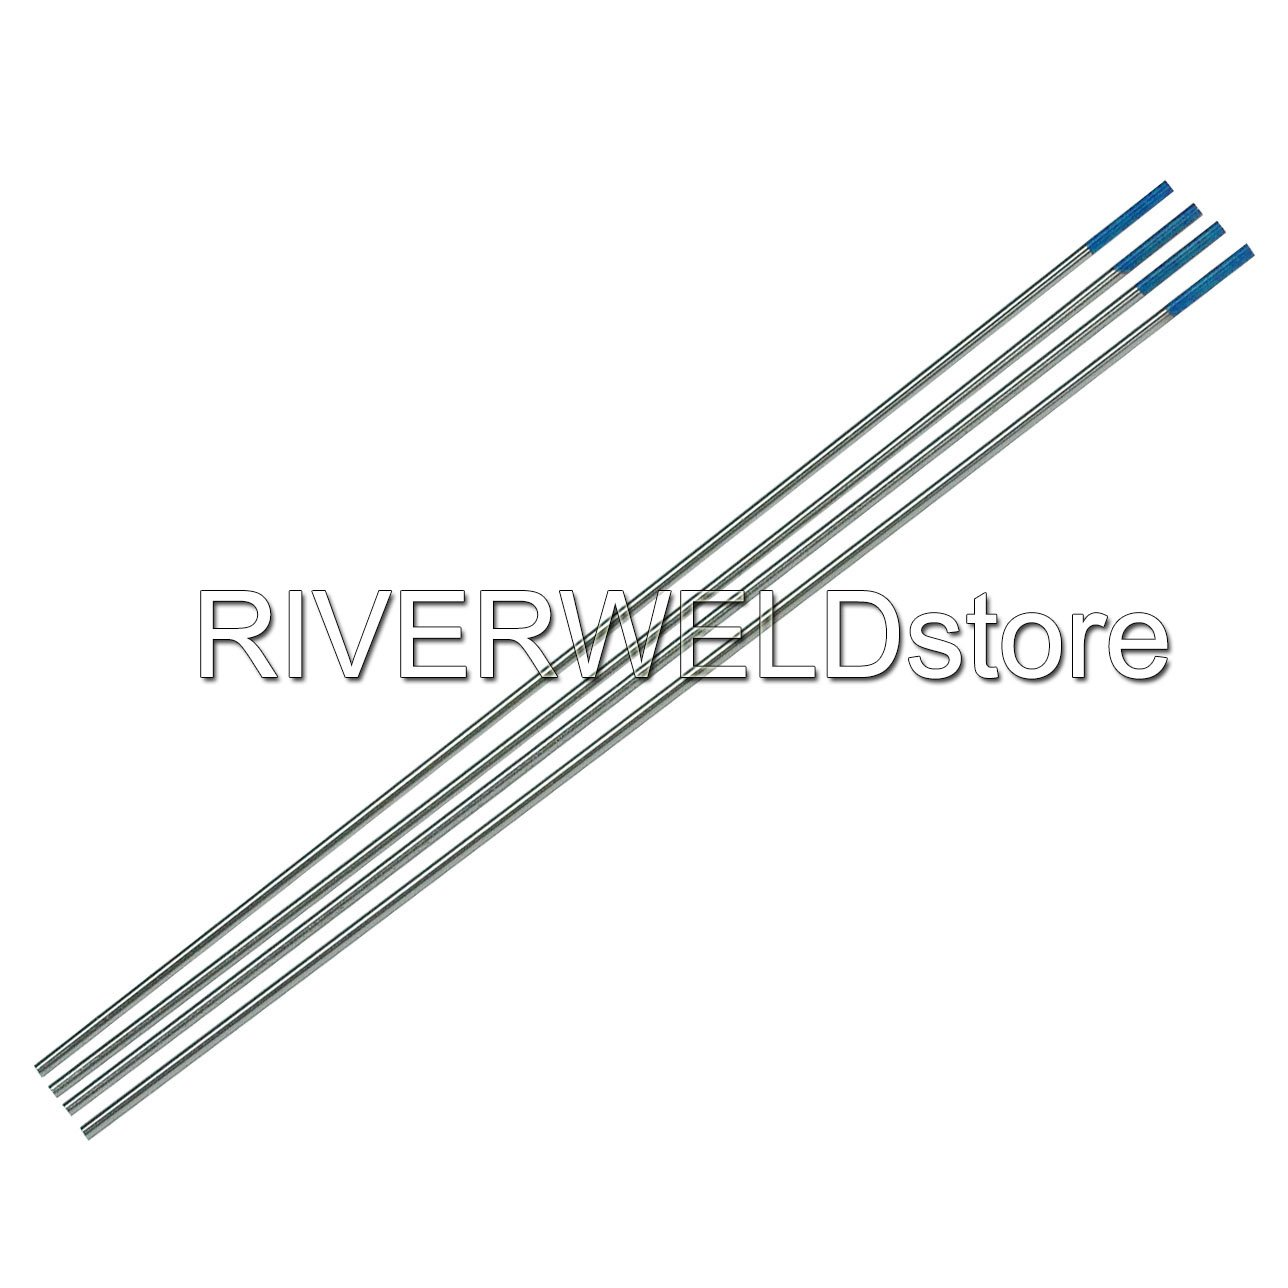 TIG Stubby Gas Lens 17GL116 1//16 /& #10 Pyrex Cup /& 2/% Lanthanated Tungsten Electrode Kit Fit DB SR WP 17 18 26 TIG Welding Torch 17pcs RIVERWELDstore